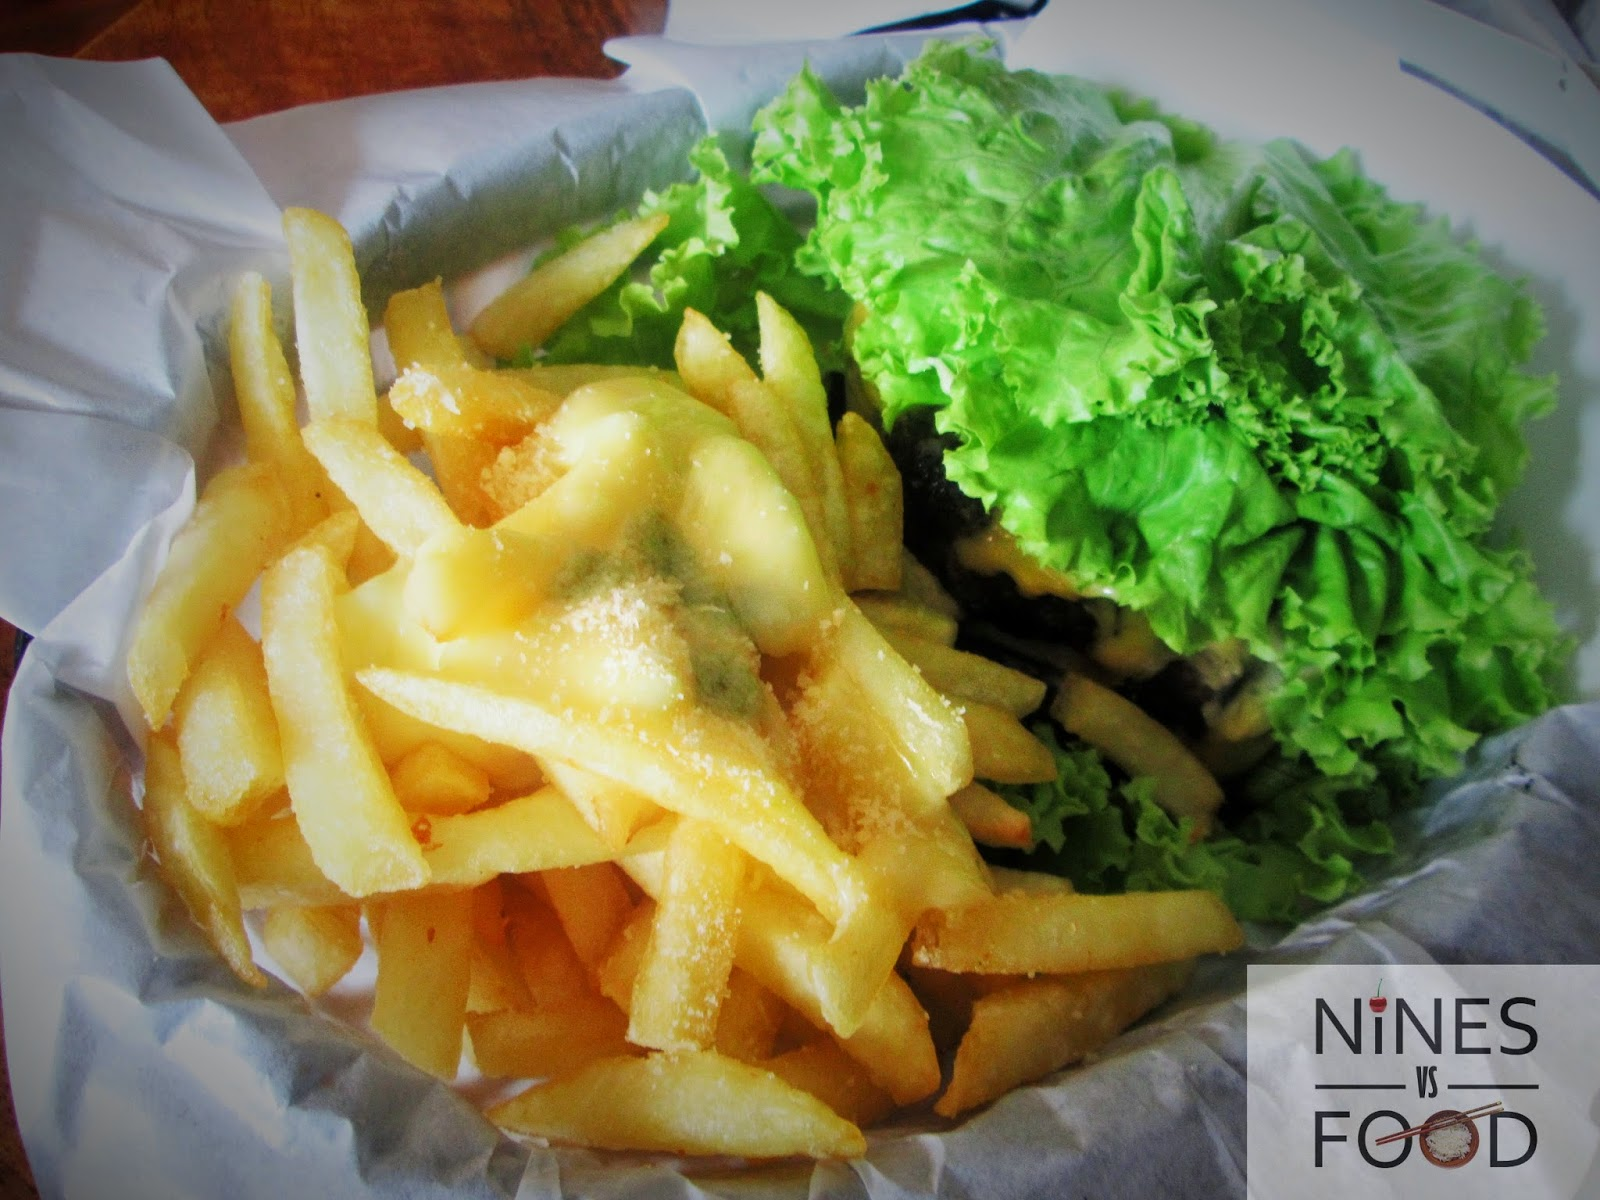 Nines vs. Food - Burger Culture Tomas Morato-9.jpg